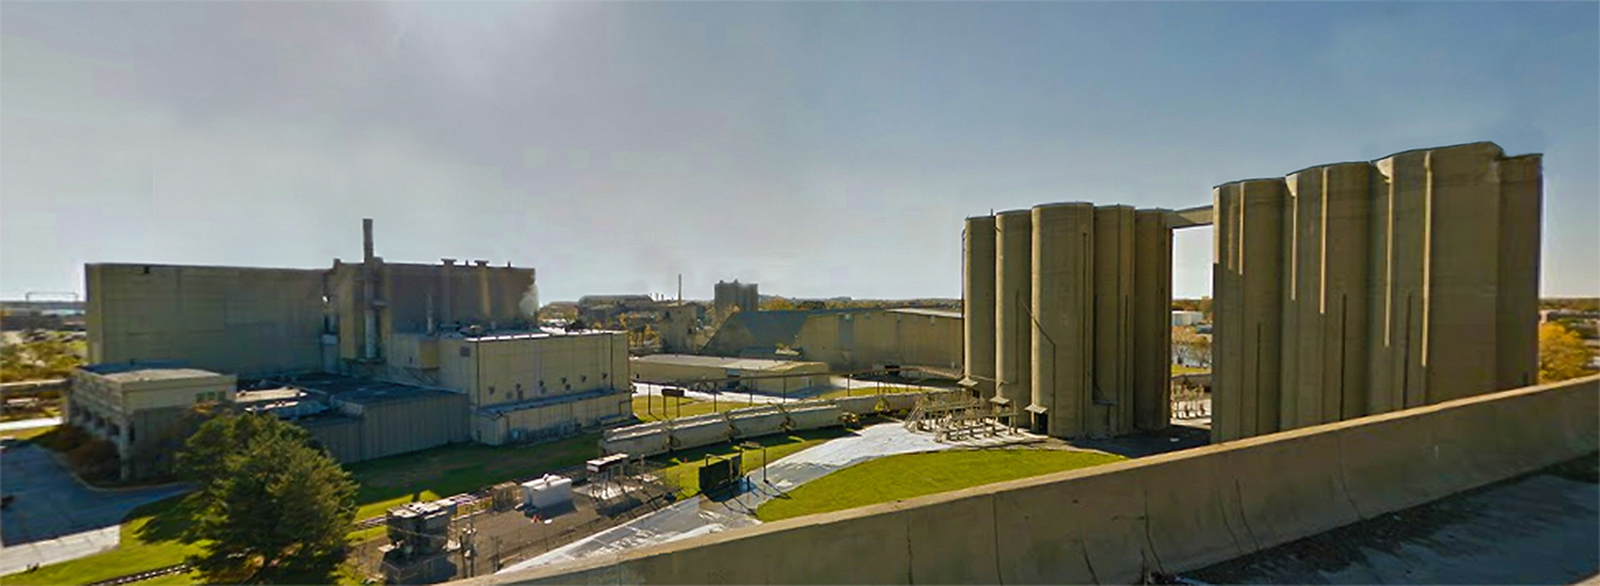 Martin Engineering: Innovative Belt Cleaning Technology  Eliminates Carryback at Cement Plant